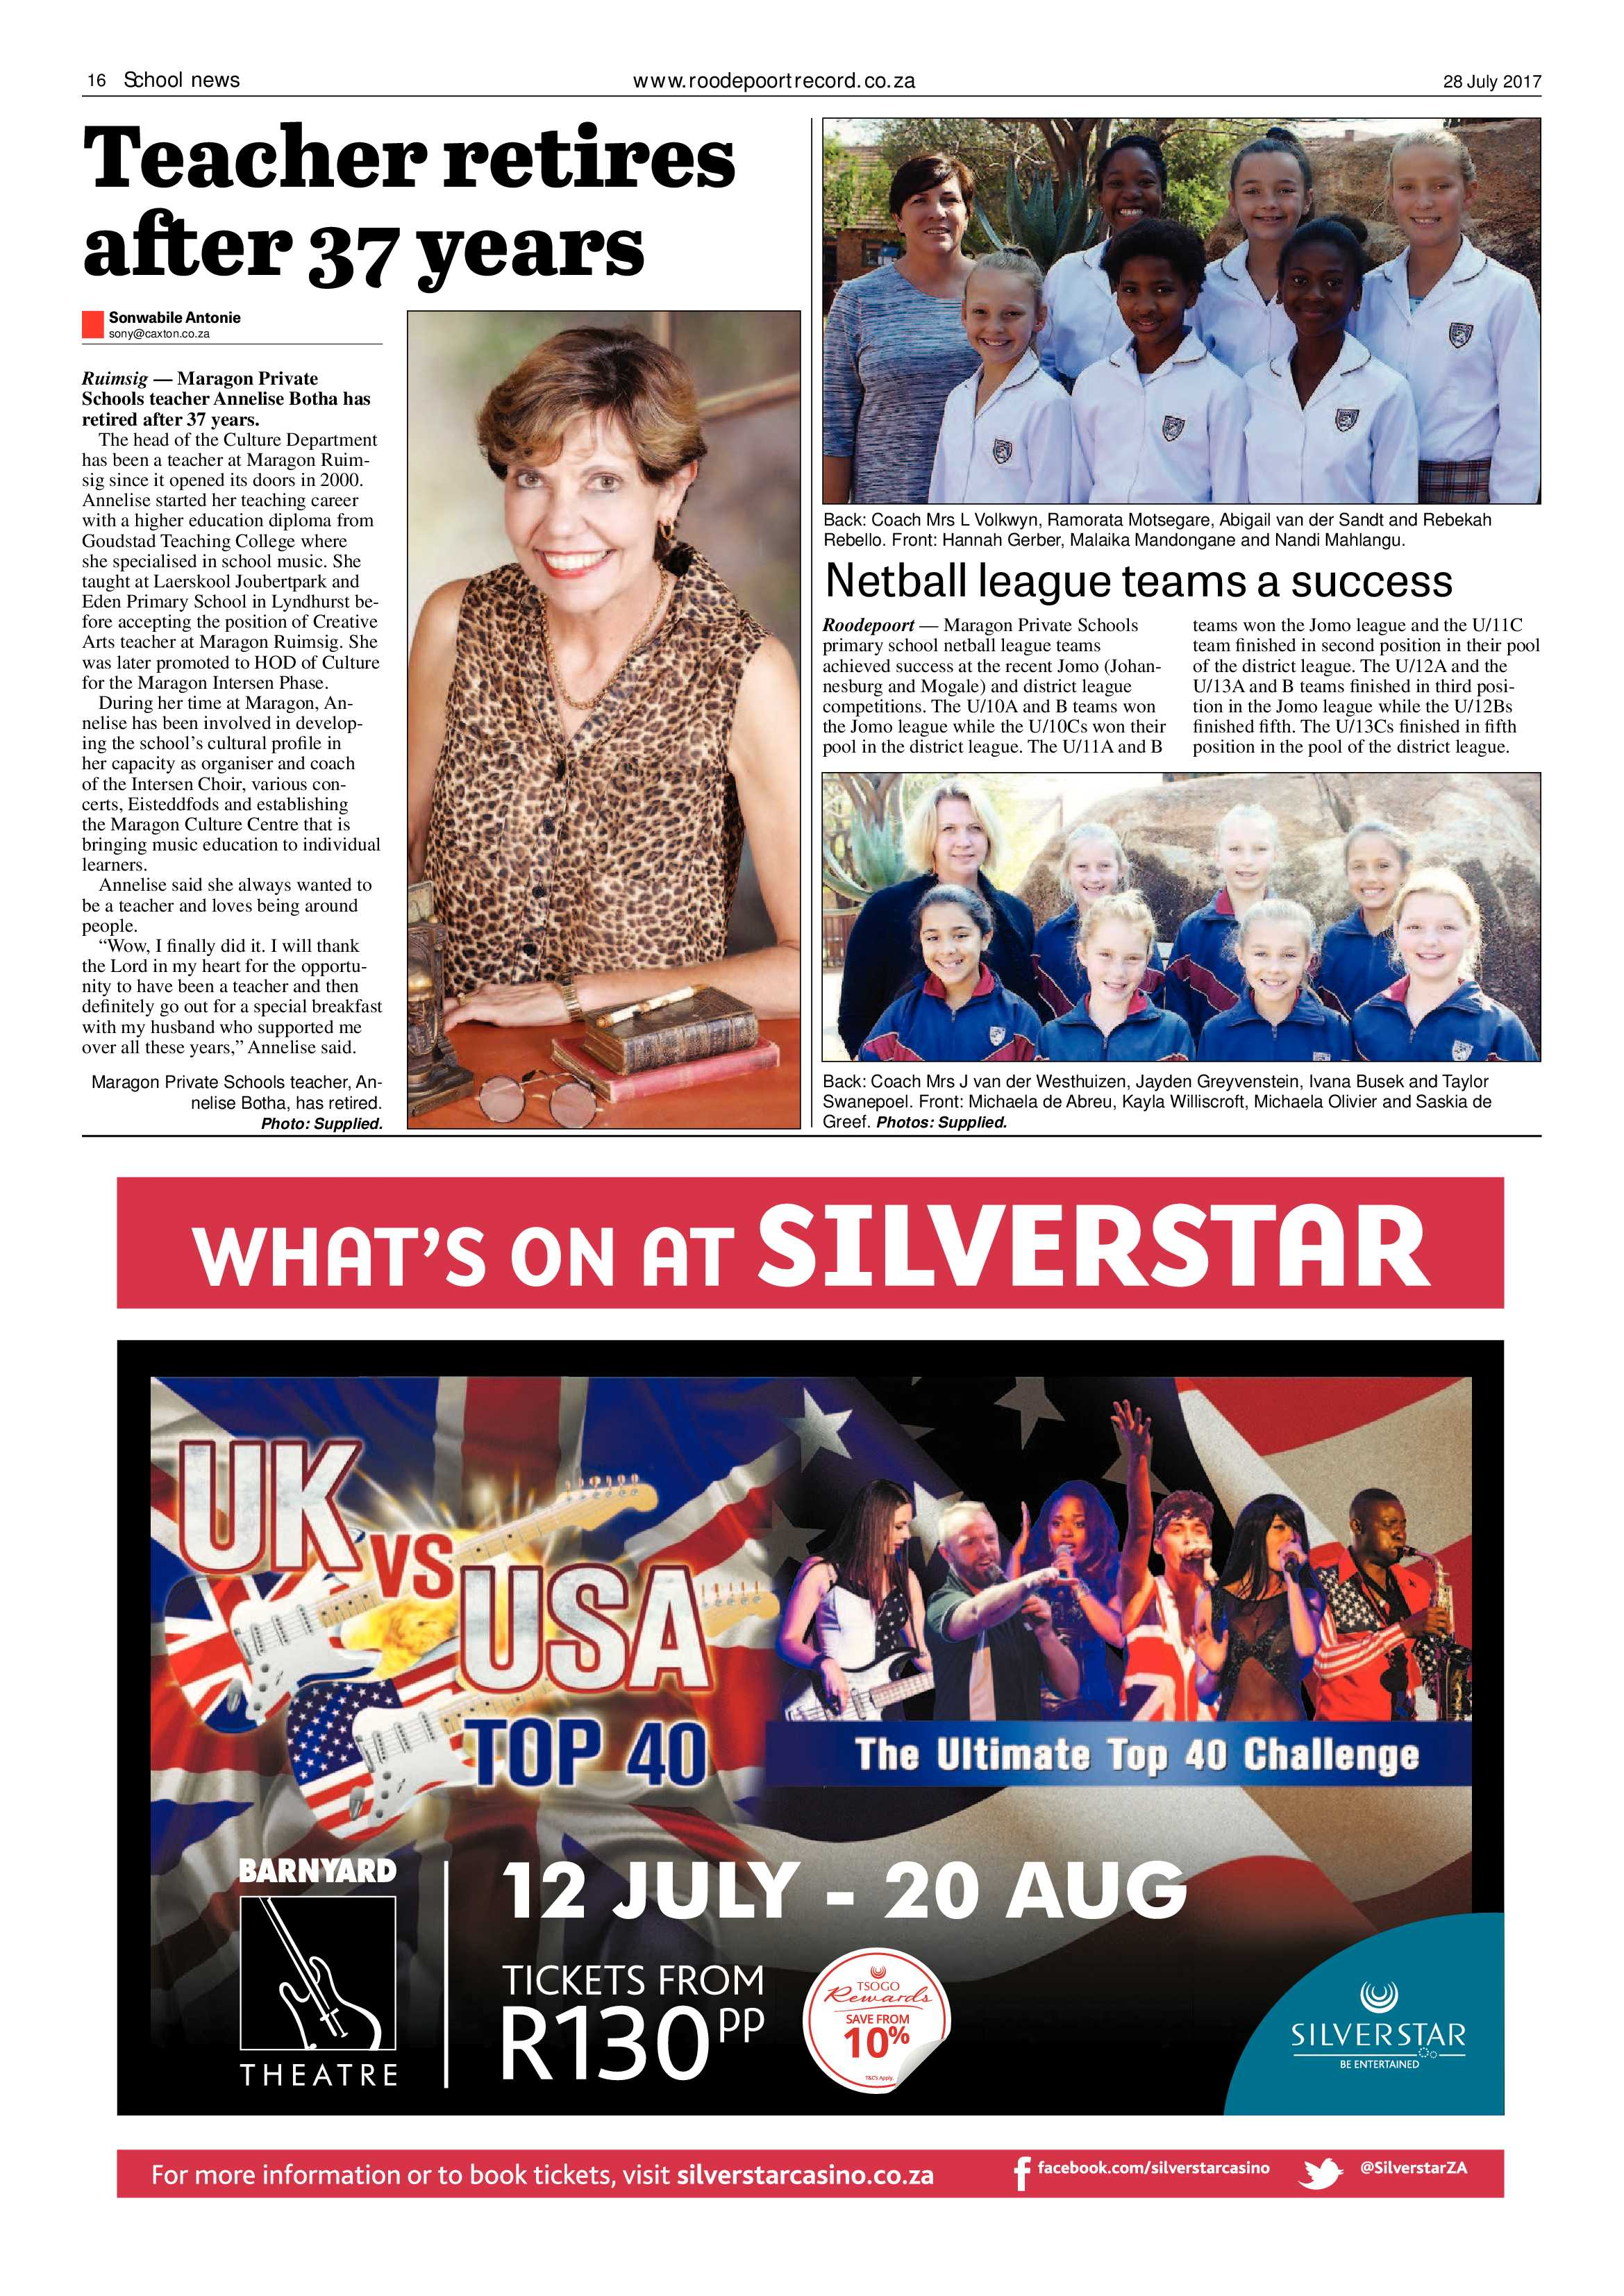 roodepoort-record-28-july-2017-epapers-page-16